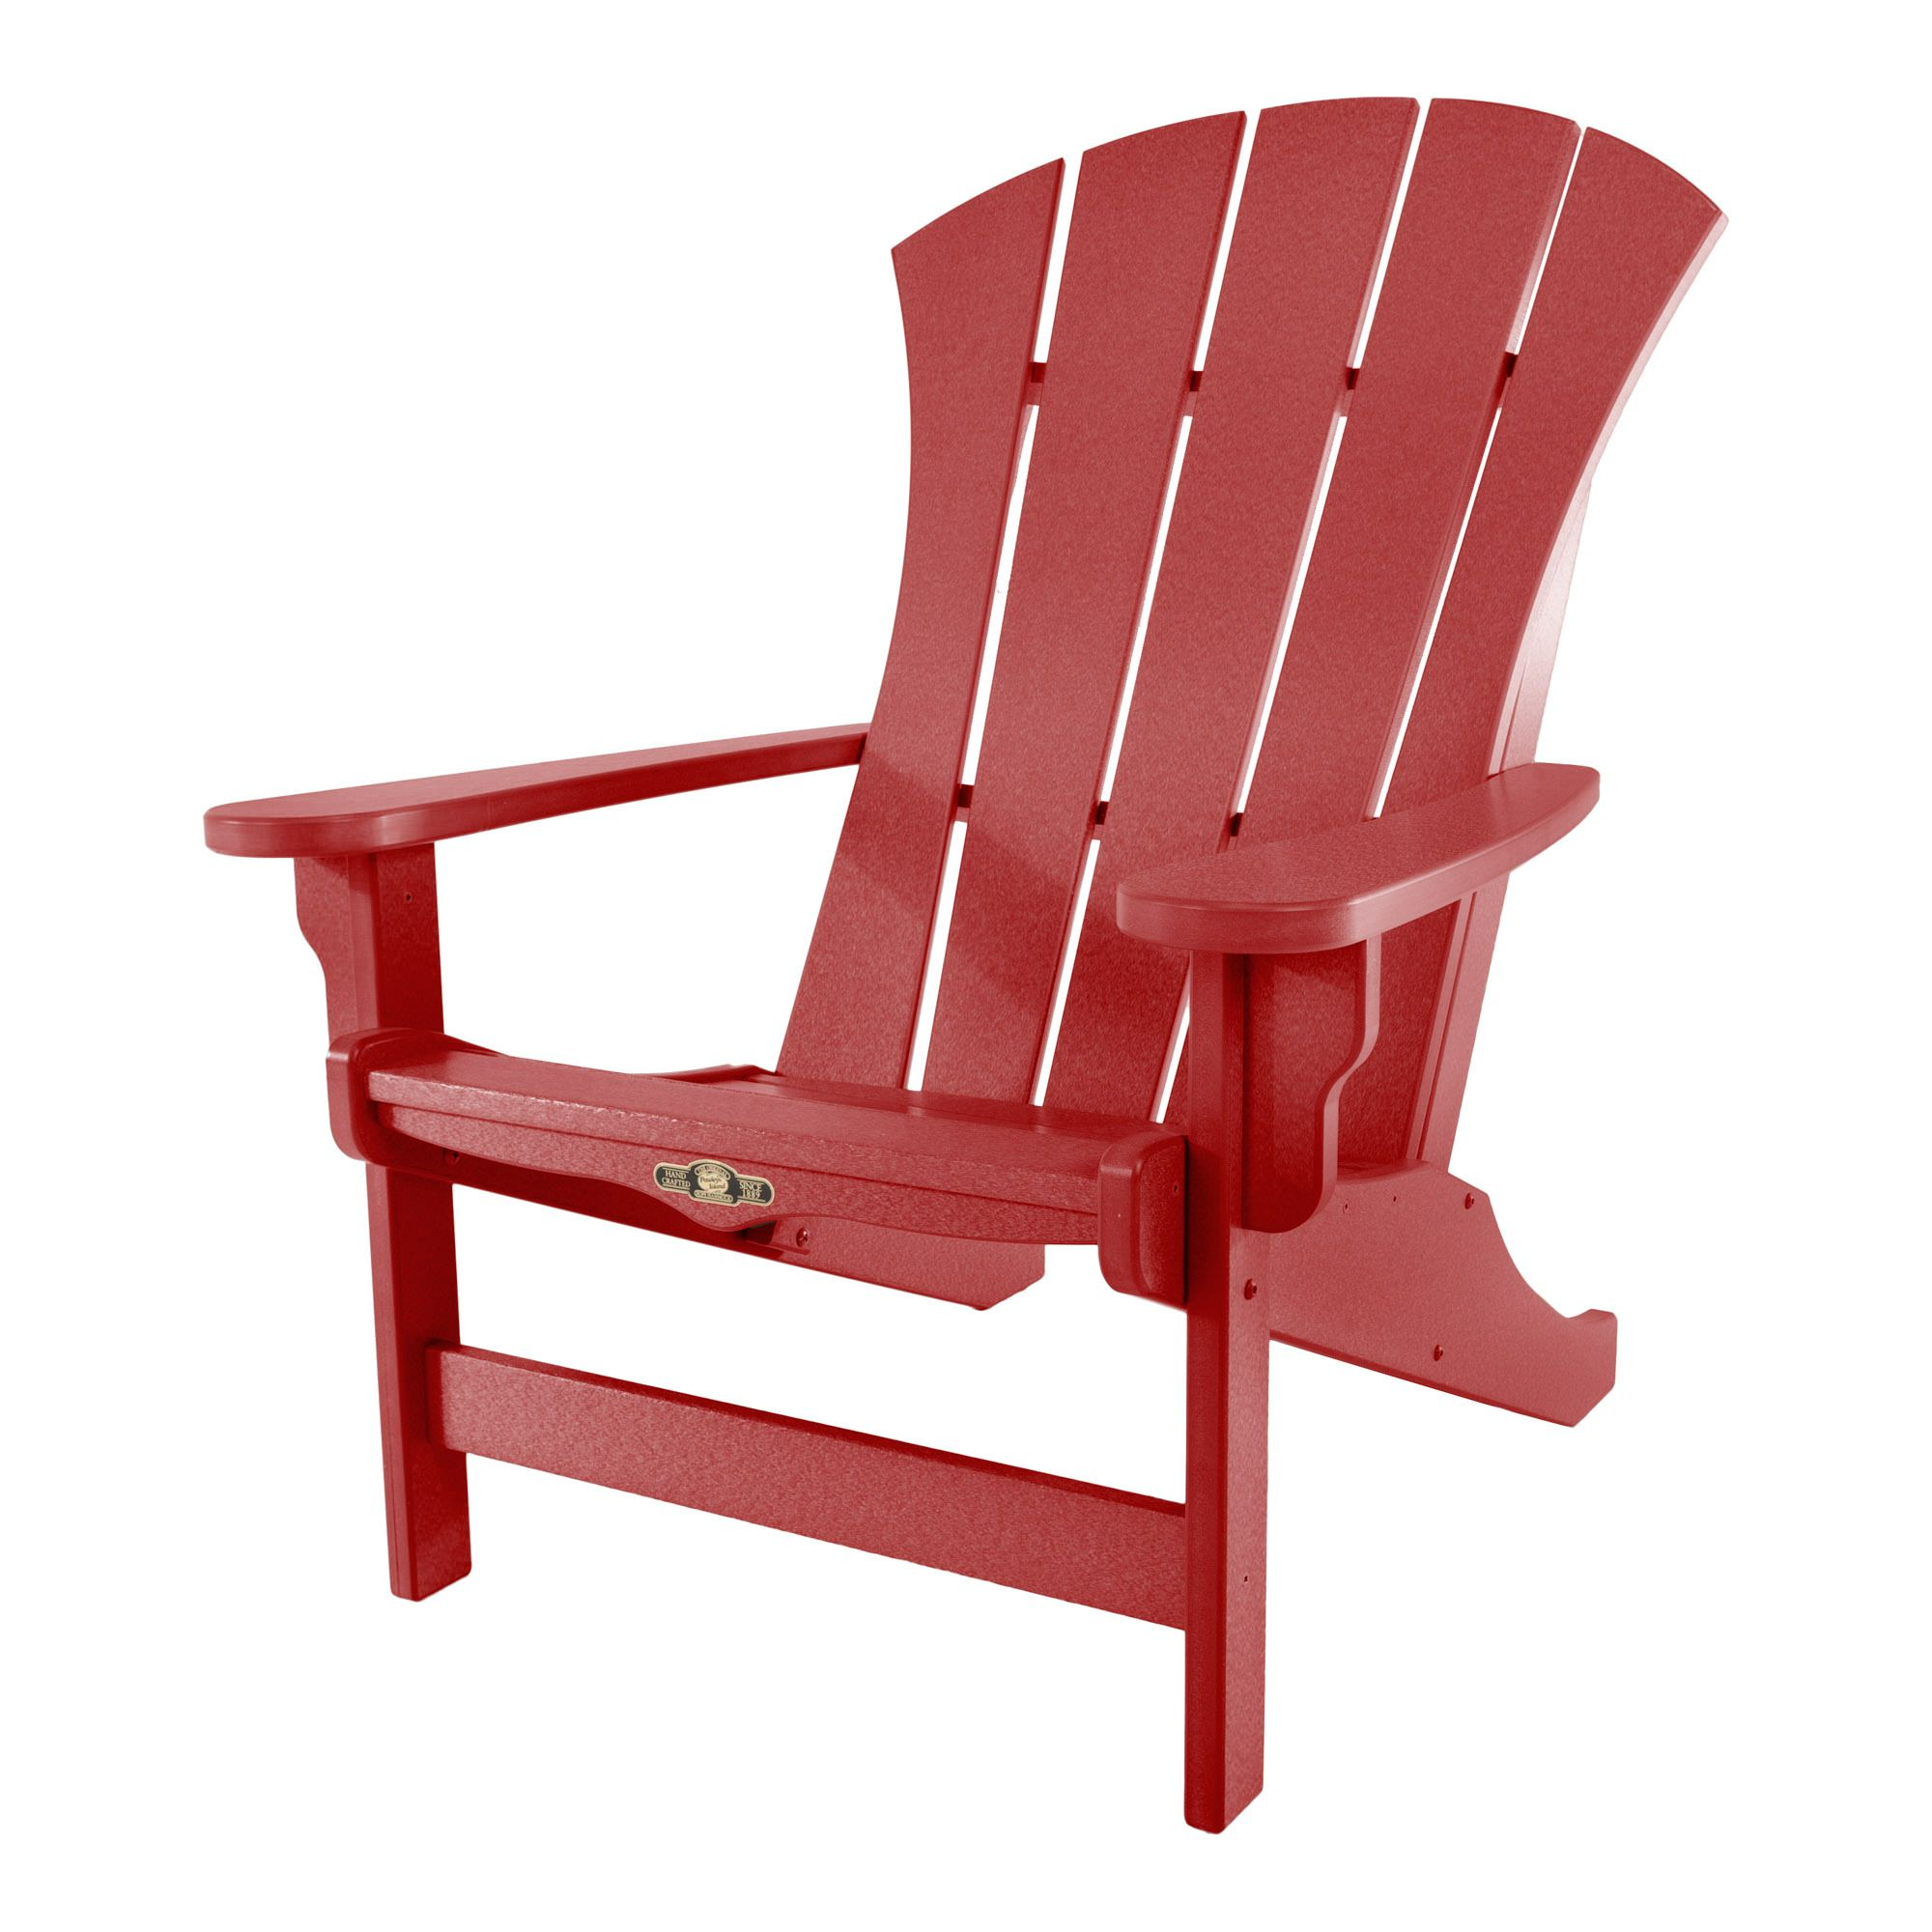 Lifetime Adirondack Chairs Welcome To Pawleys Island Hammocks